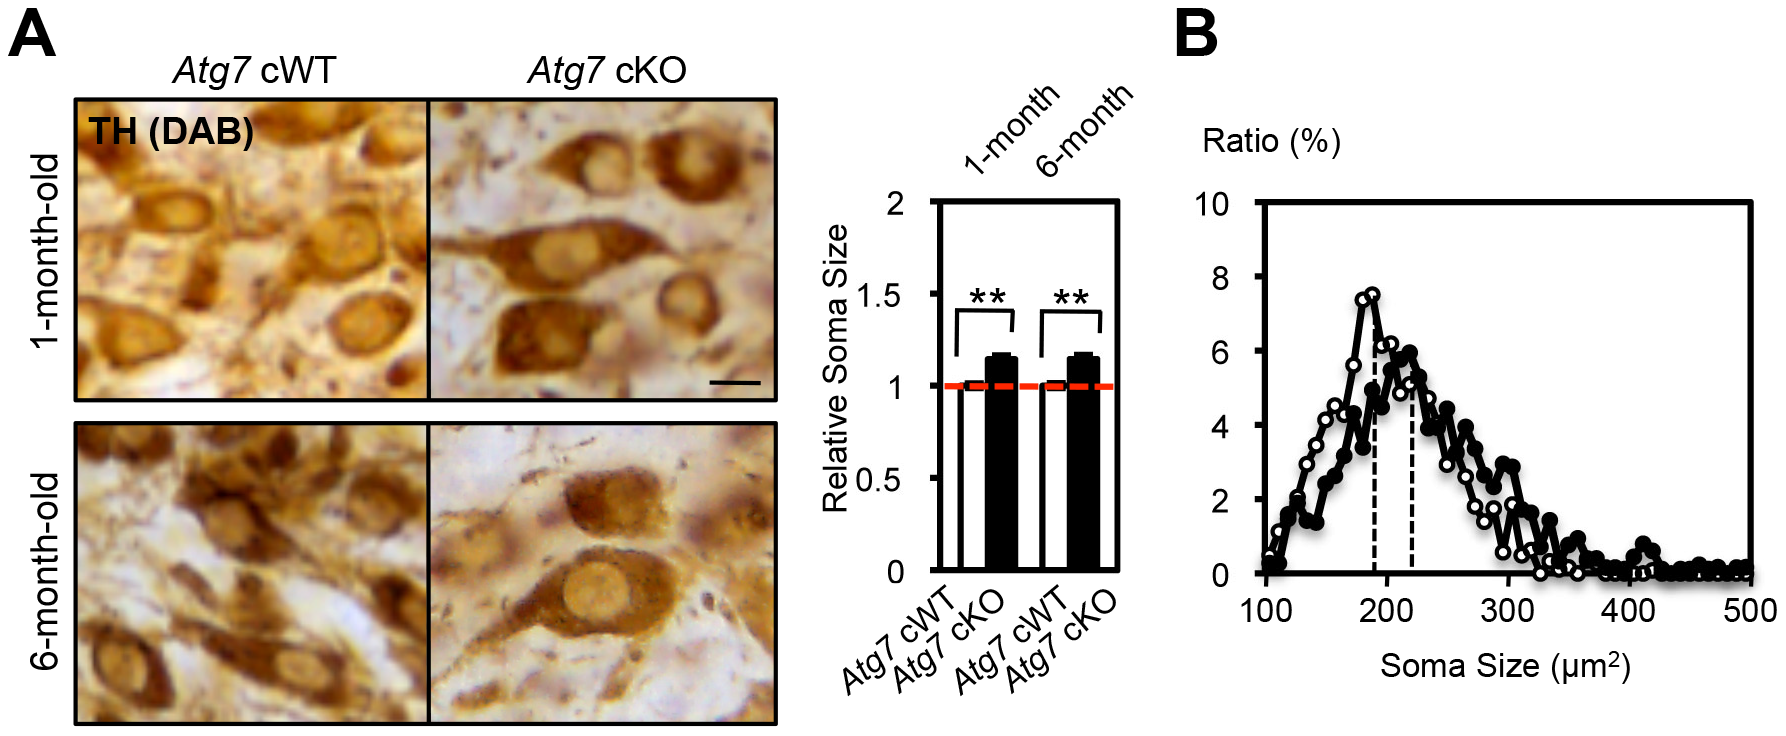 Enlarged soma size in TH-positive DA neurons of <i>Atg7</i> cKO mice.